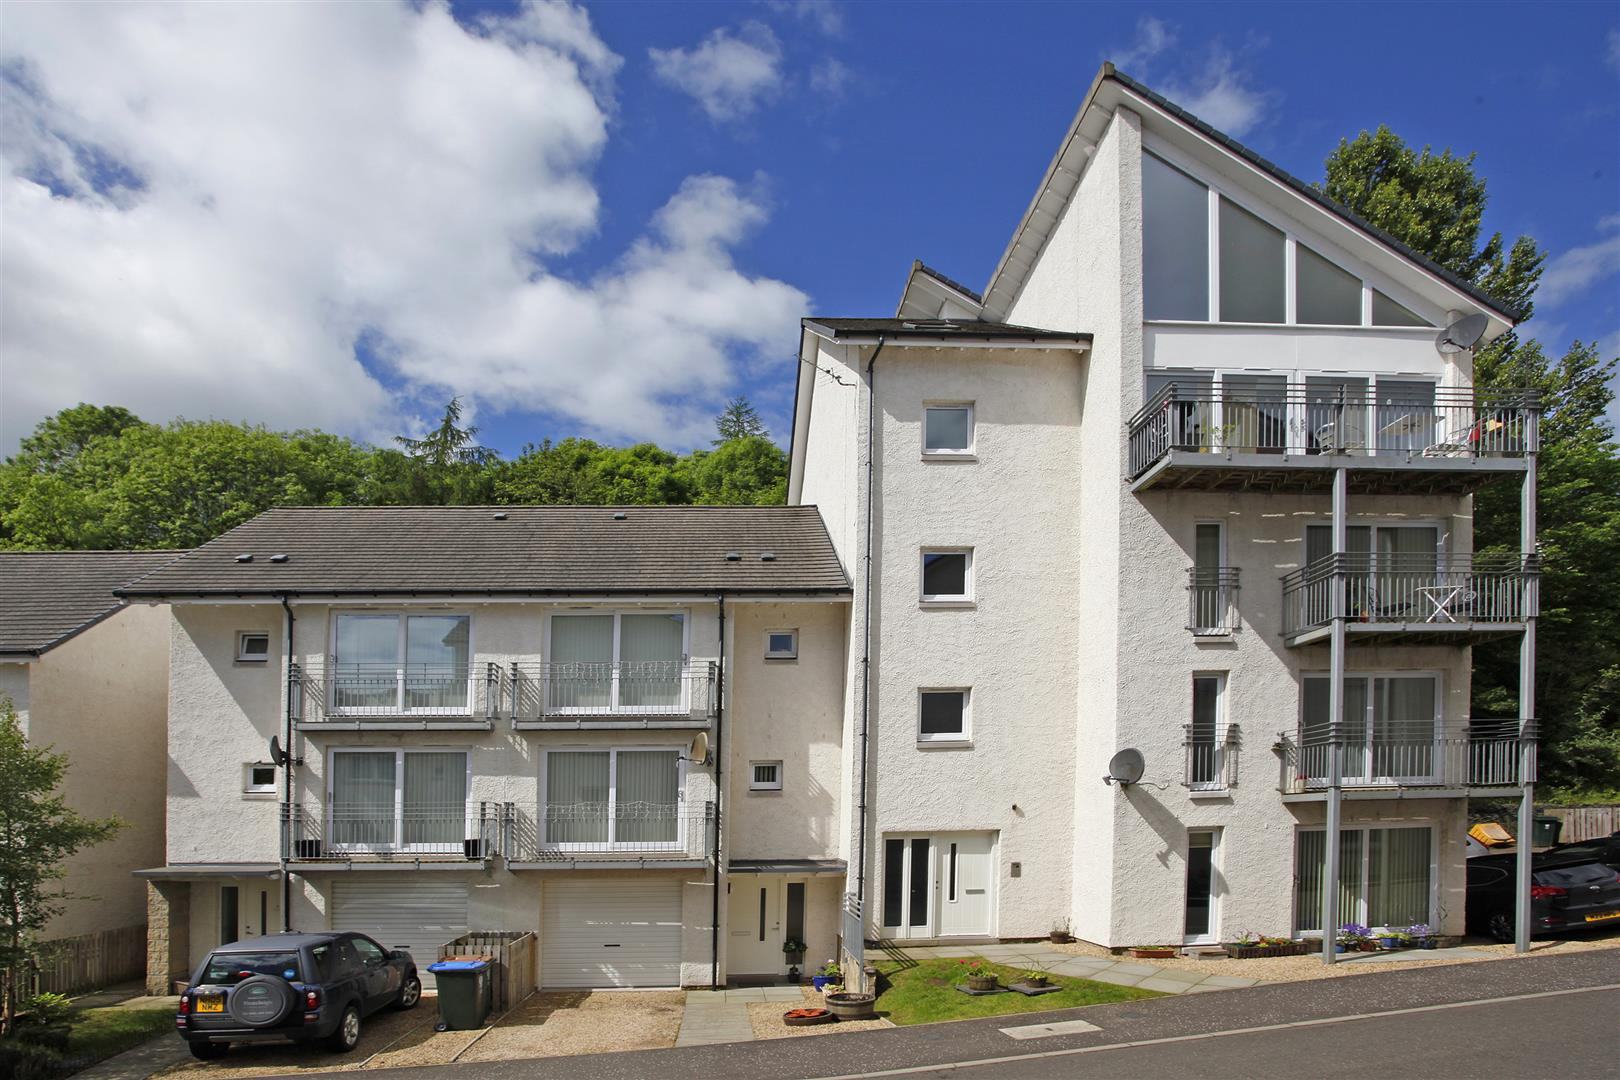 29, Riverside Park, Blairgowrie, Perthshire, PH10 6GB, UK